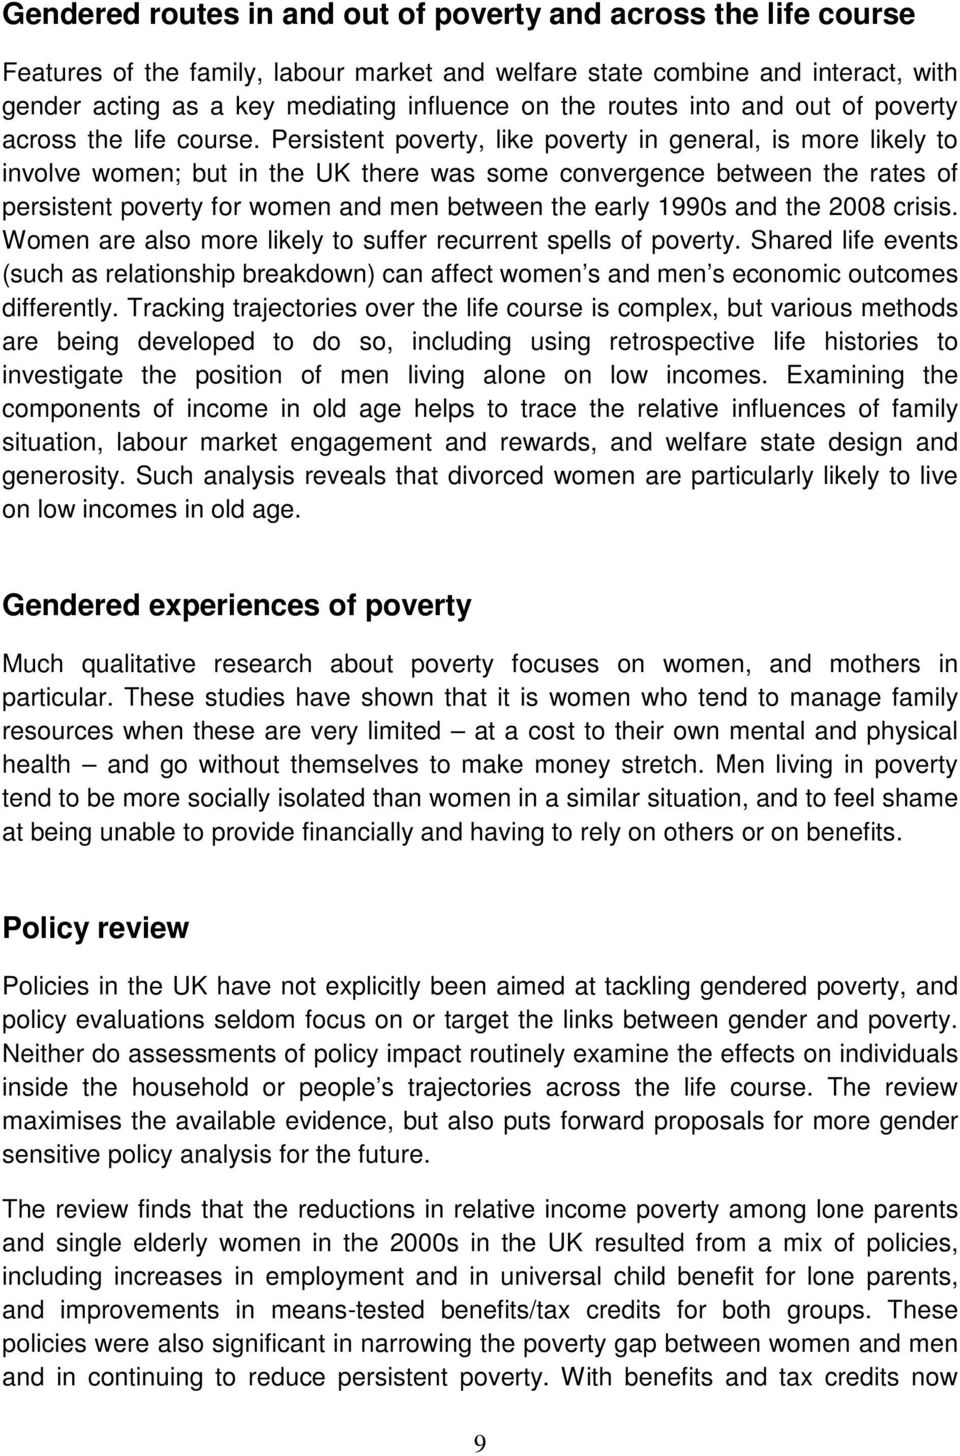 Persistent poverty, like poverty in general, is more likely to involve women; but in the UK there was some convergence between the rates of persistent poverty for women and men between the early